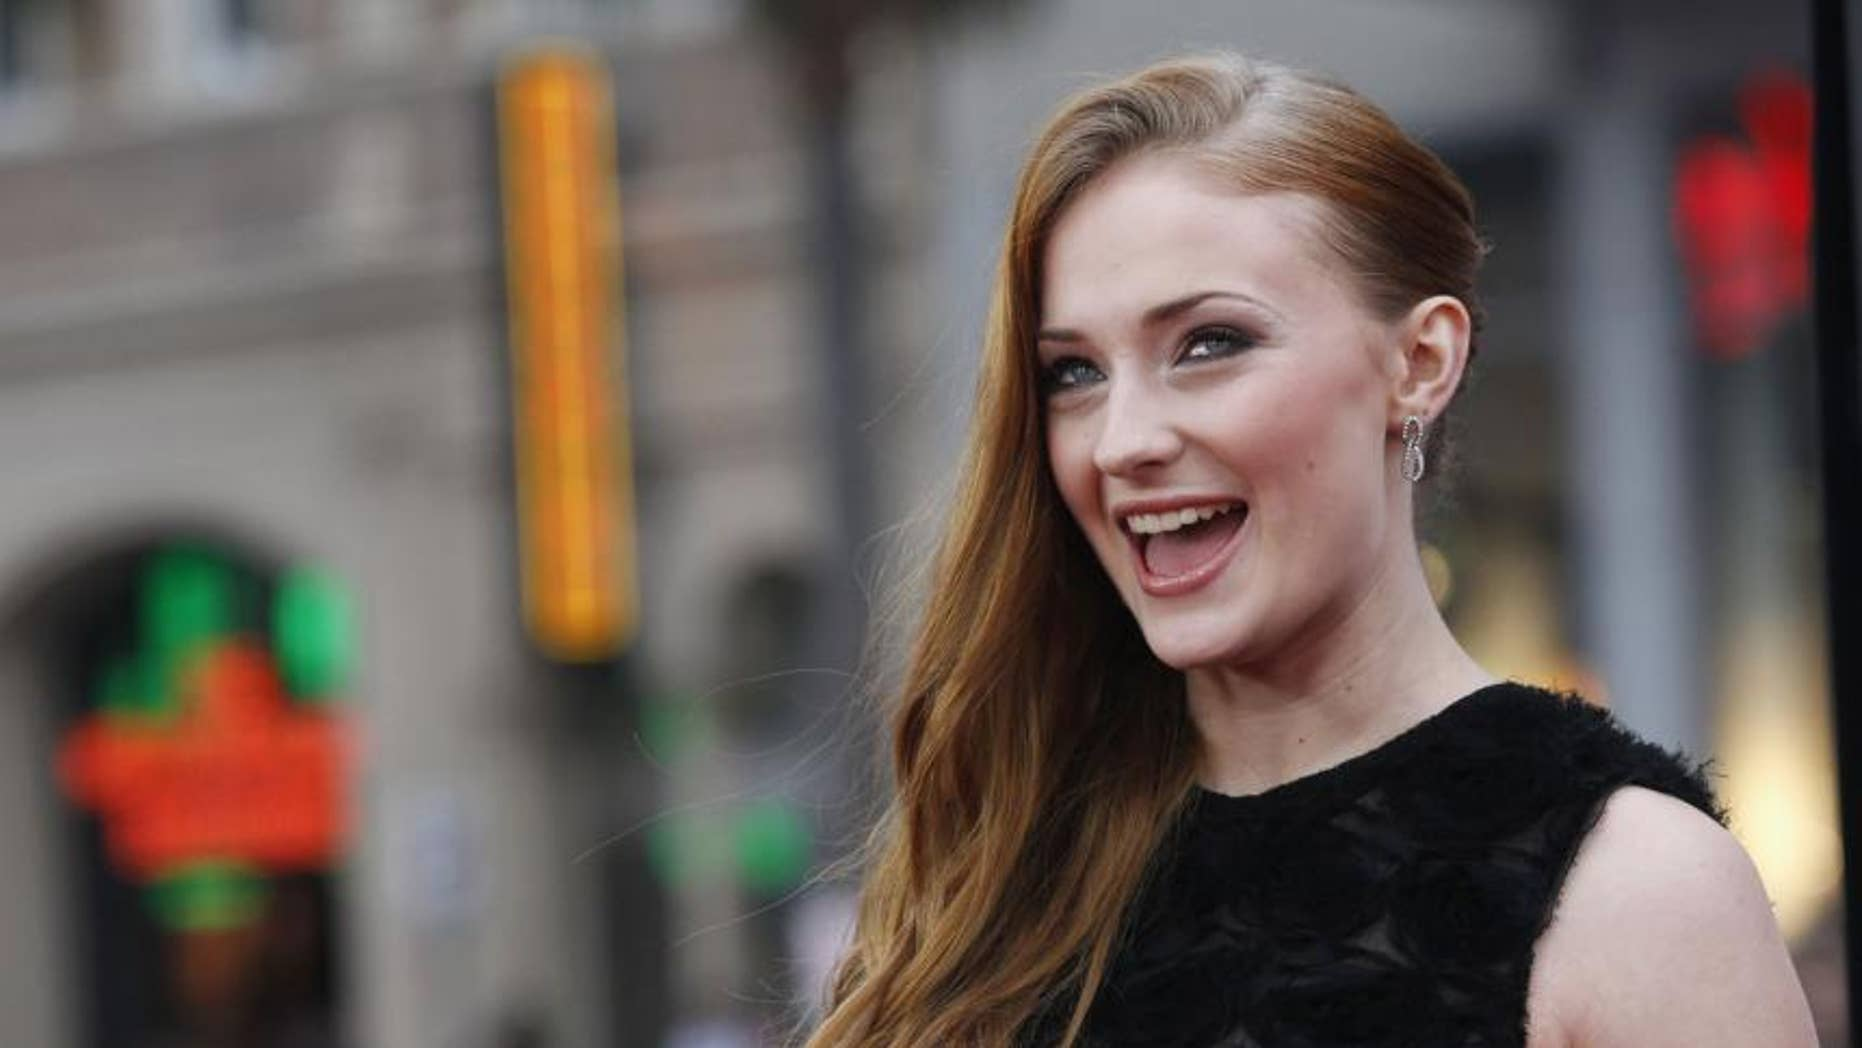 Sophie Turner chugs red wine at Rangers game with Joe Jonas